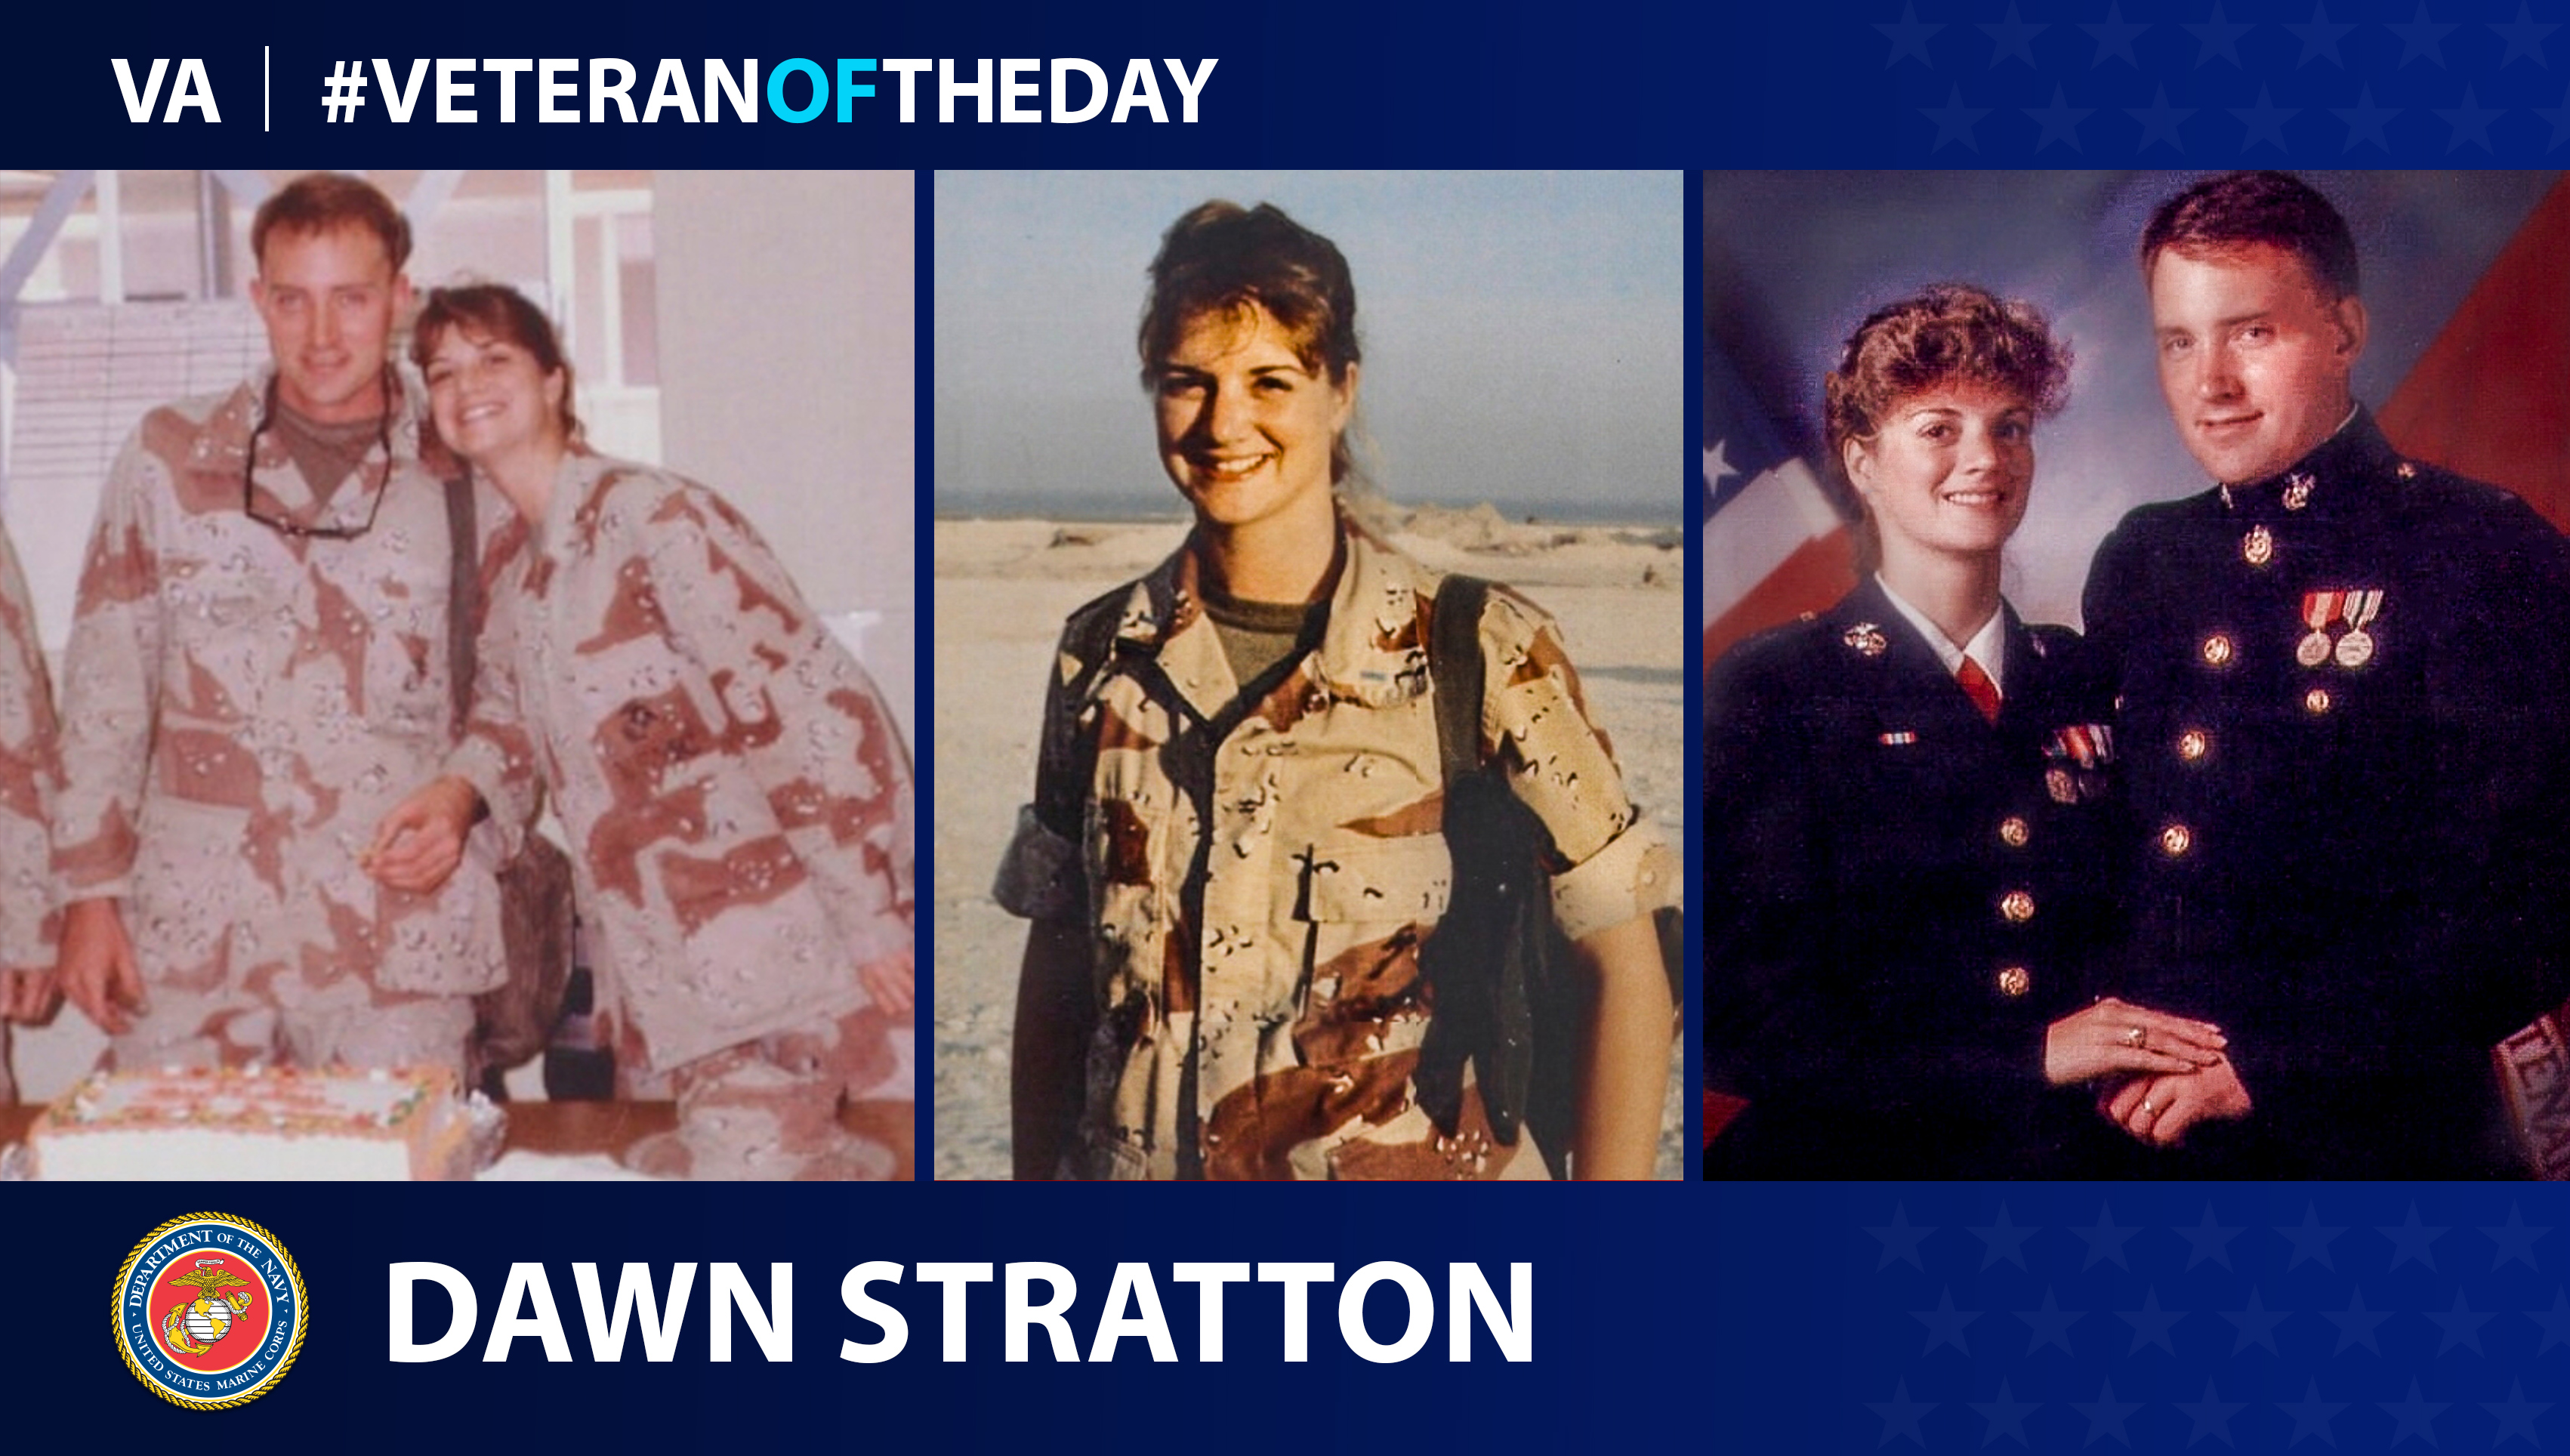 Marine Corps Veteran Dawn Stratton is today's Veteran of the Day.